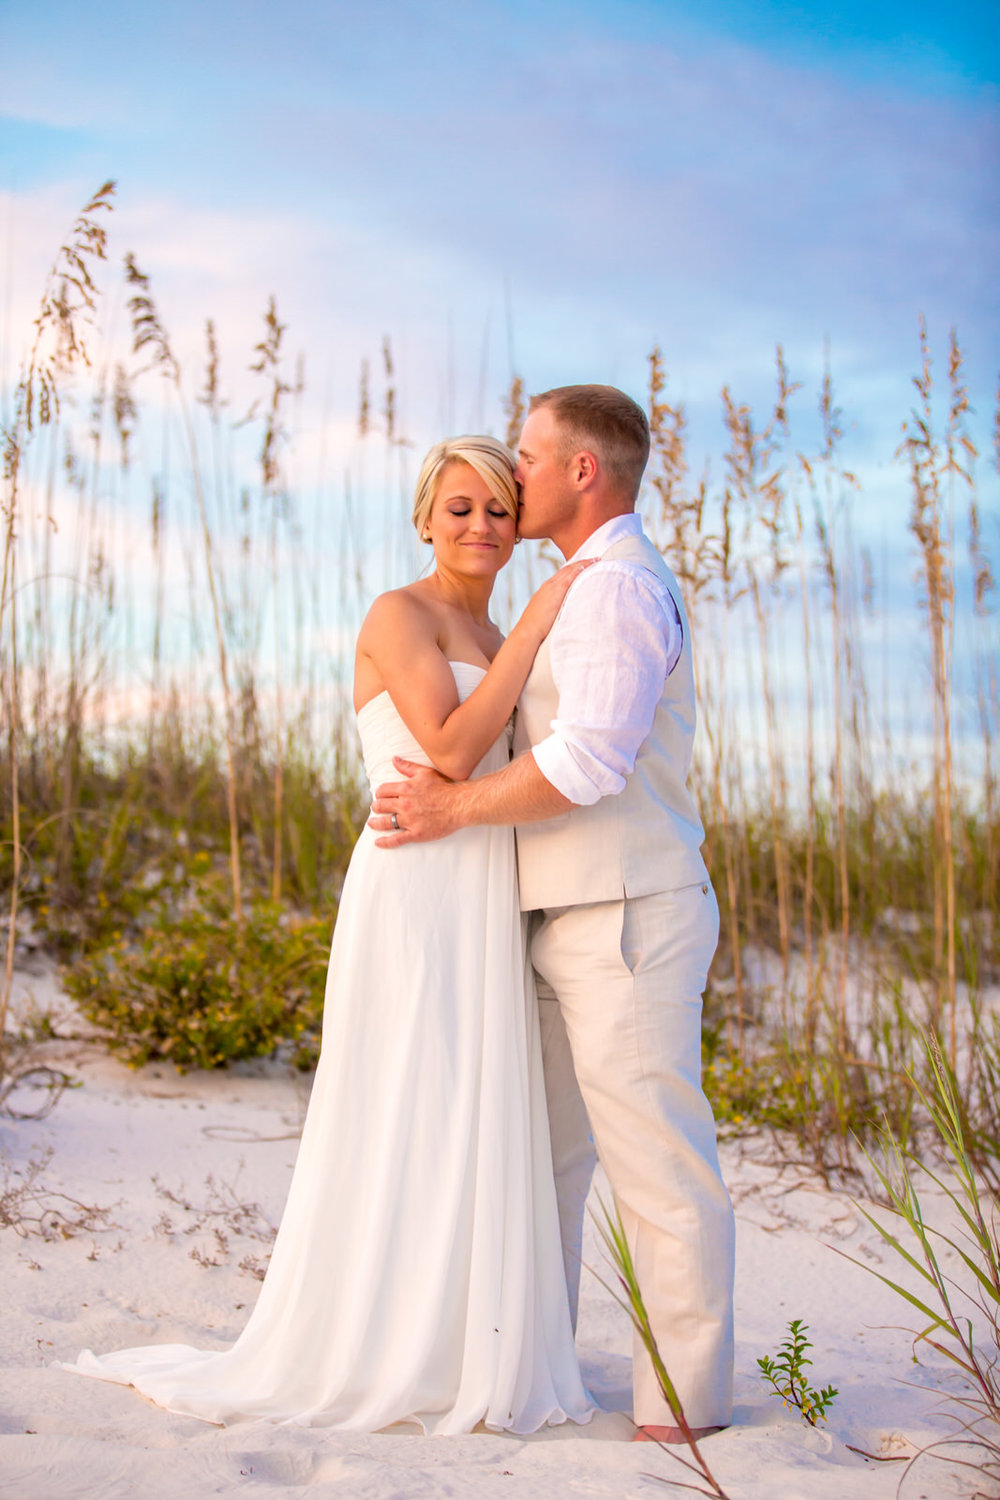 Orange beach wedding venues.jpg